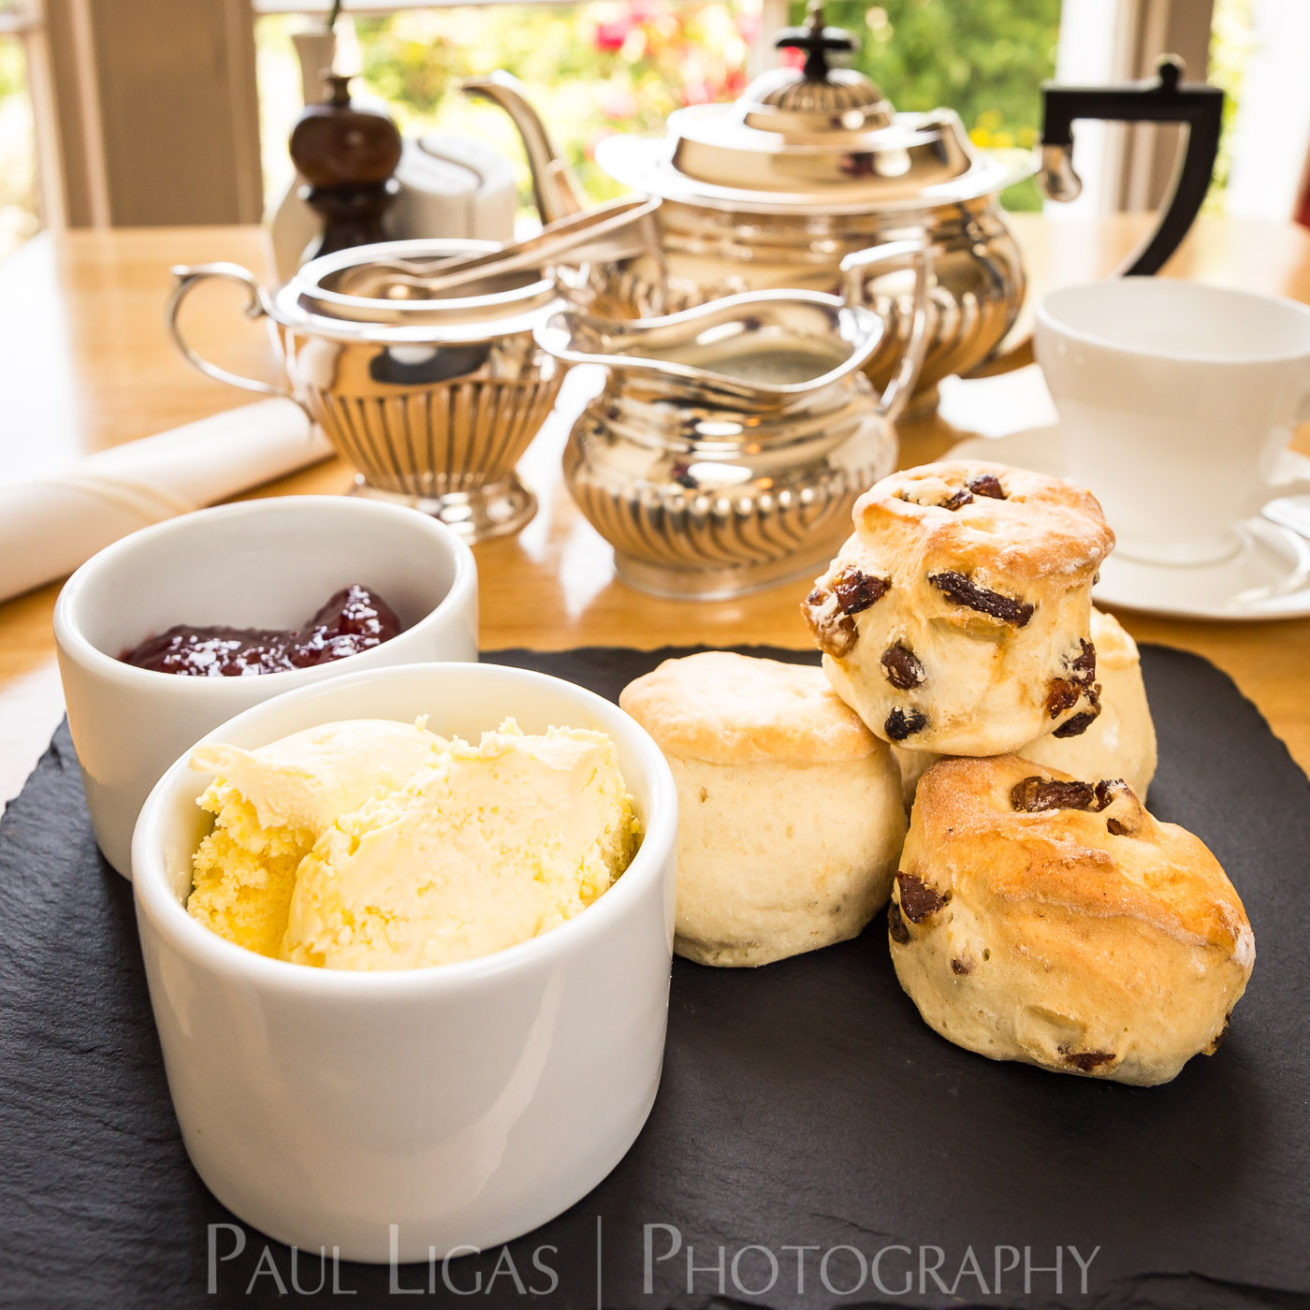 The Cottage In The Wood, Malvern, Worcestershire food photographer herefordshire photography 8392